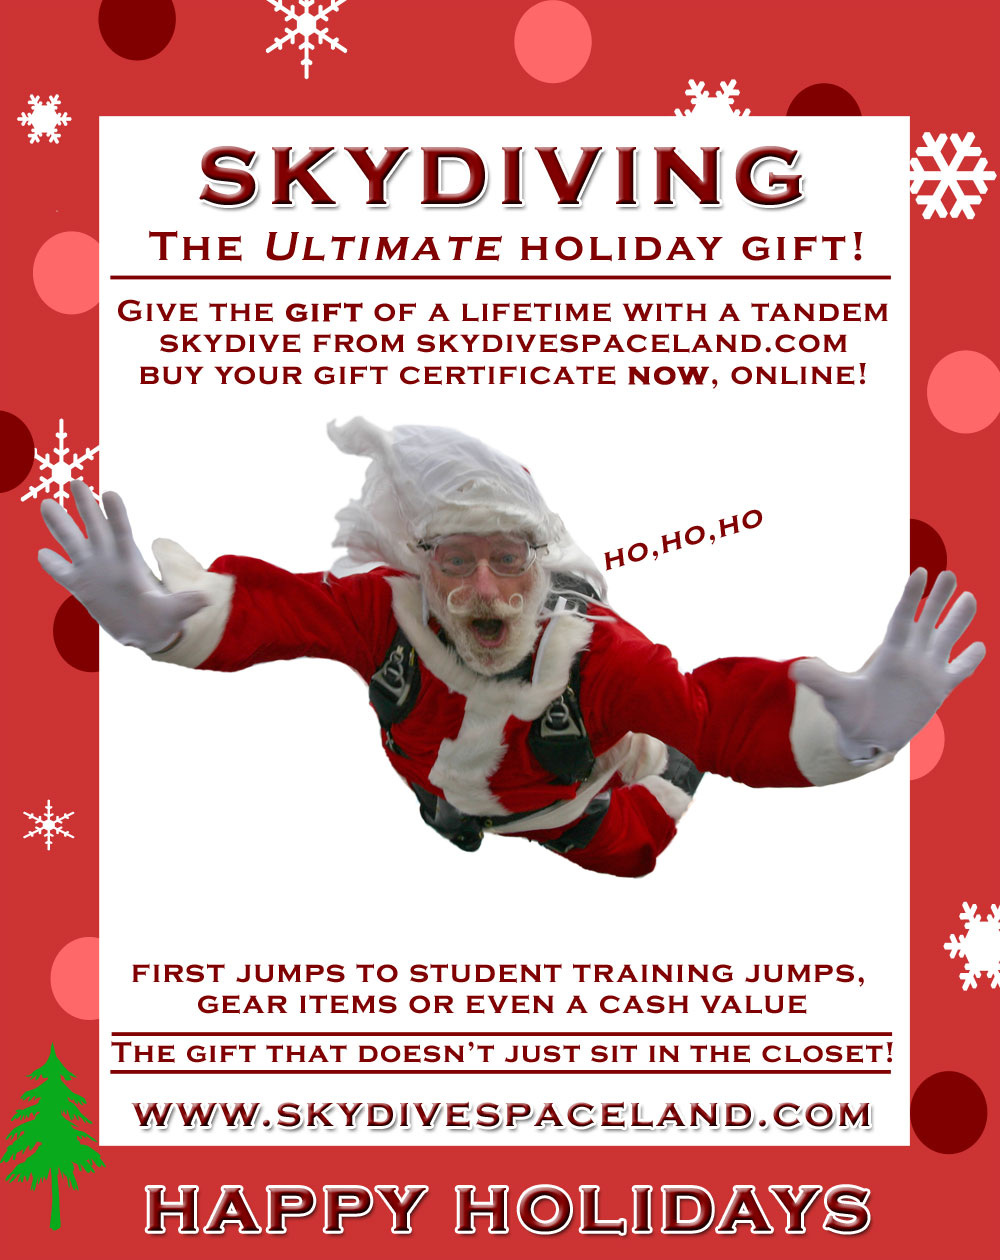 Skydive Spaceland Holiday Flyer